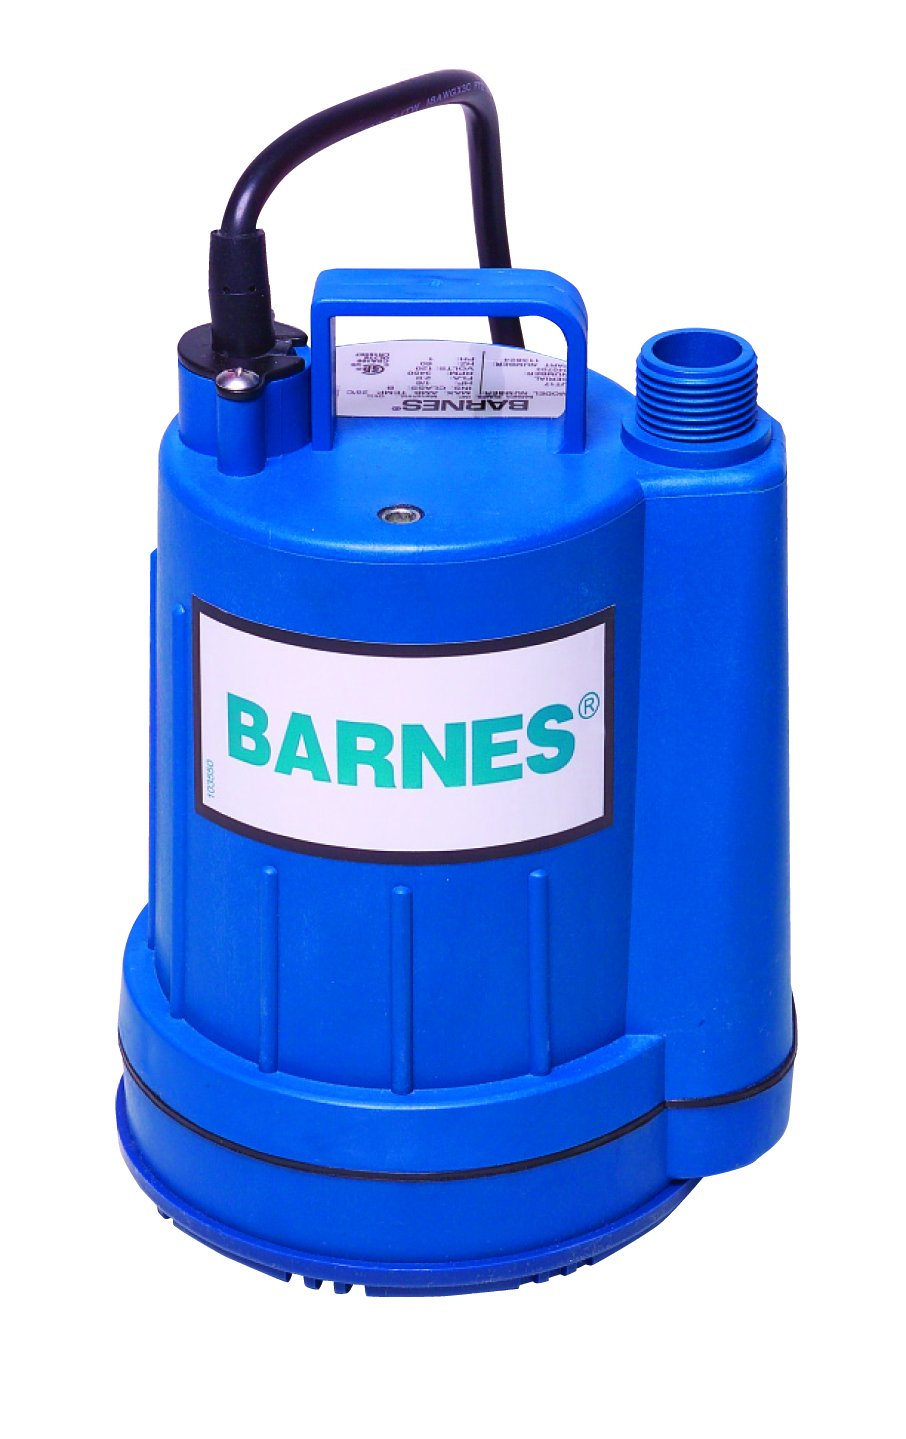 Barnes 113824 Model UT17 Submersible Sump and Utility Pump, 1/6 hp, 120V, 1 Phase, 3/4'' Vertical Discharge, 16 GPM, 23' Head, Manual, 15' Cord by Barnes (Image #1)